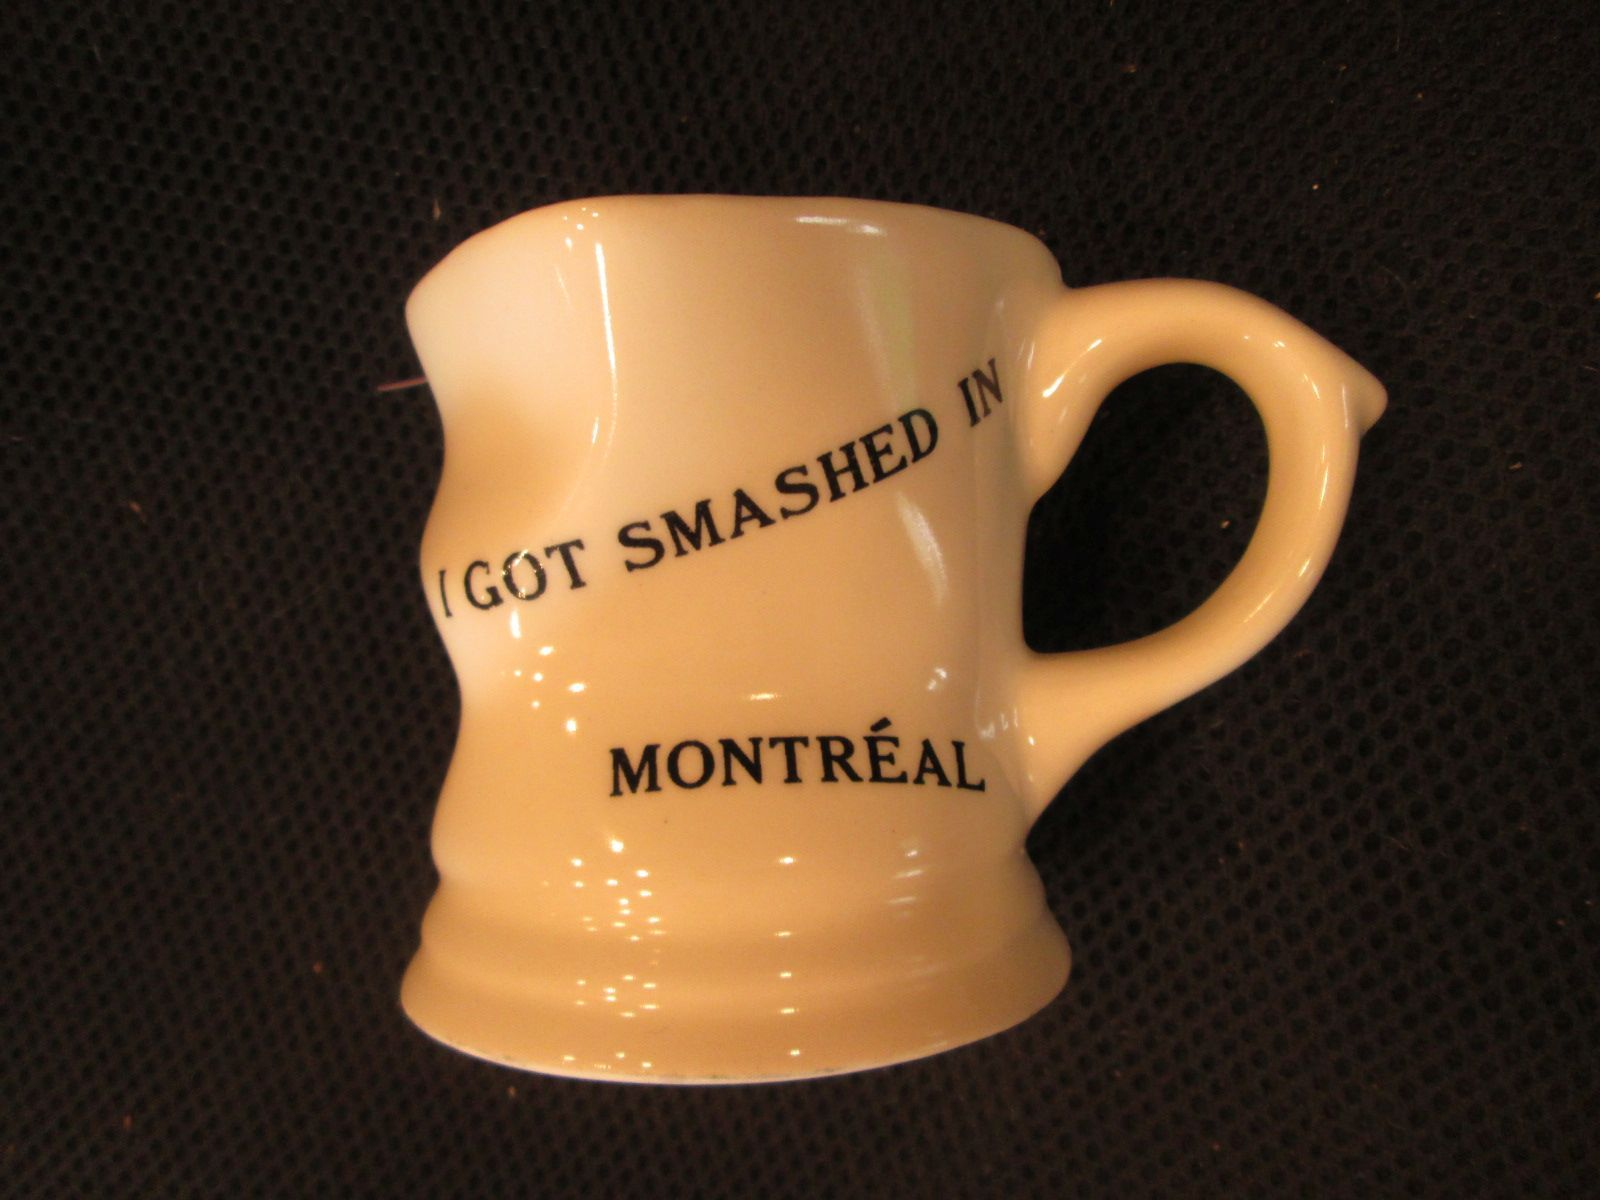 I GOT SMASHED IN MONTREAL Smushed Squished Coffee Cup Mug